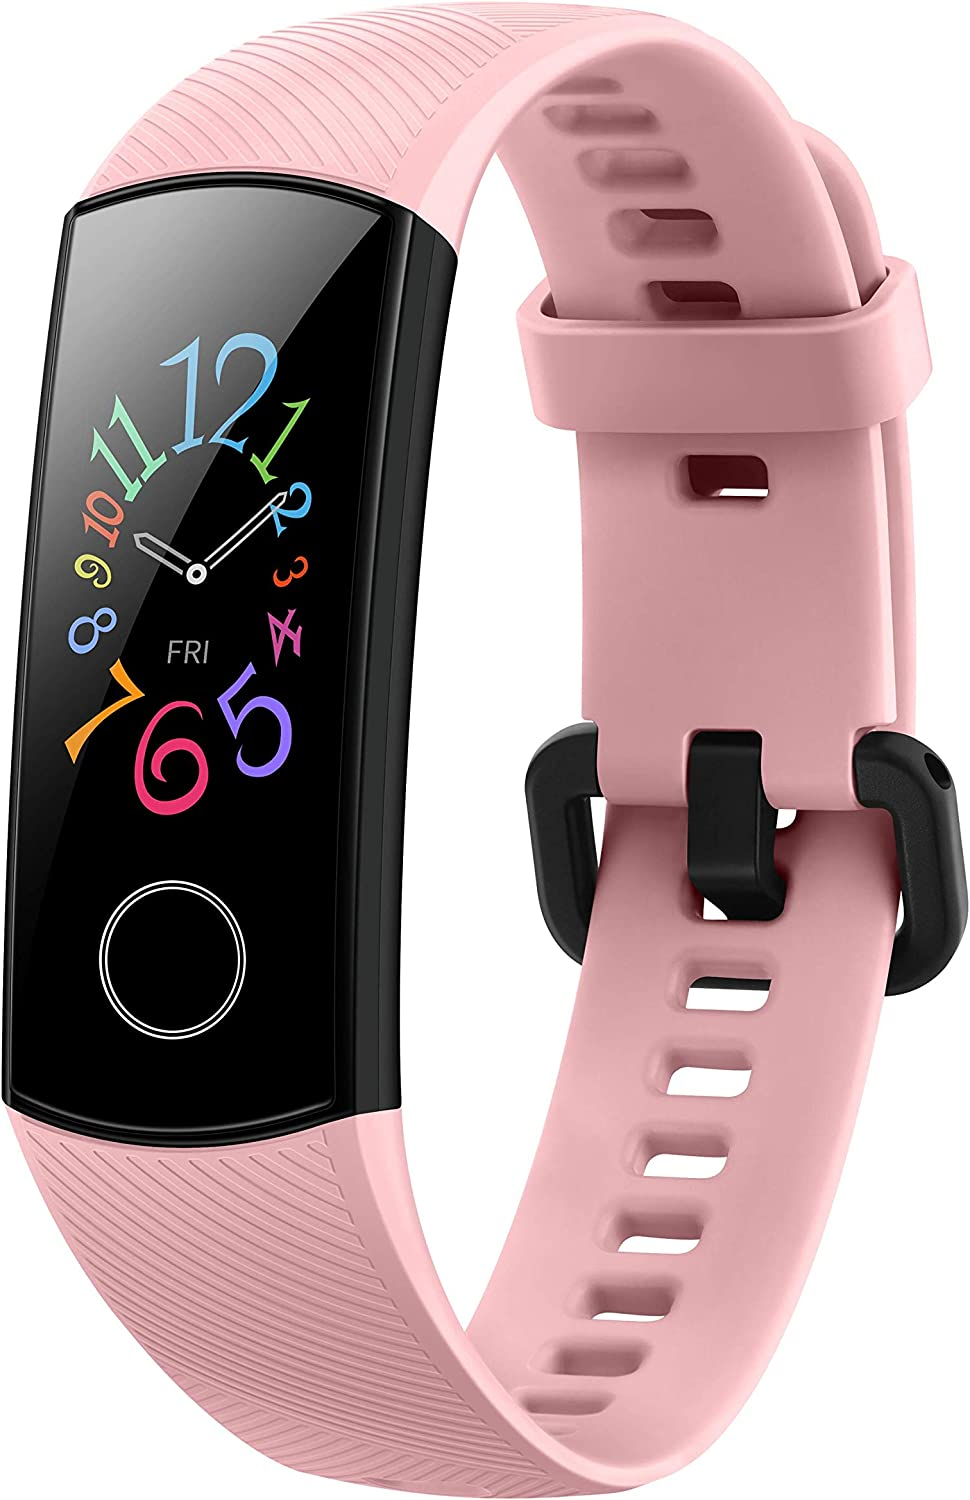 honor fitness band 5 under 5000